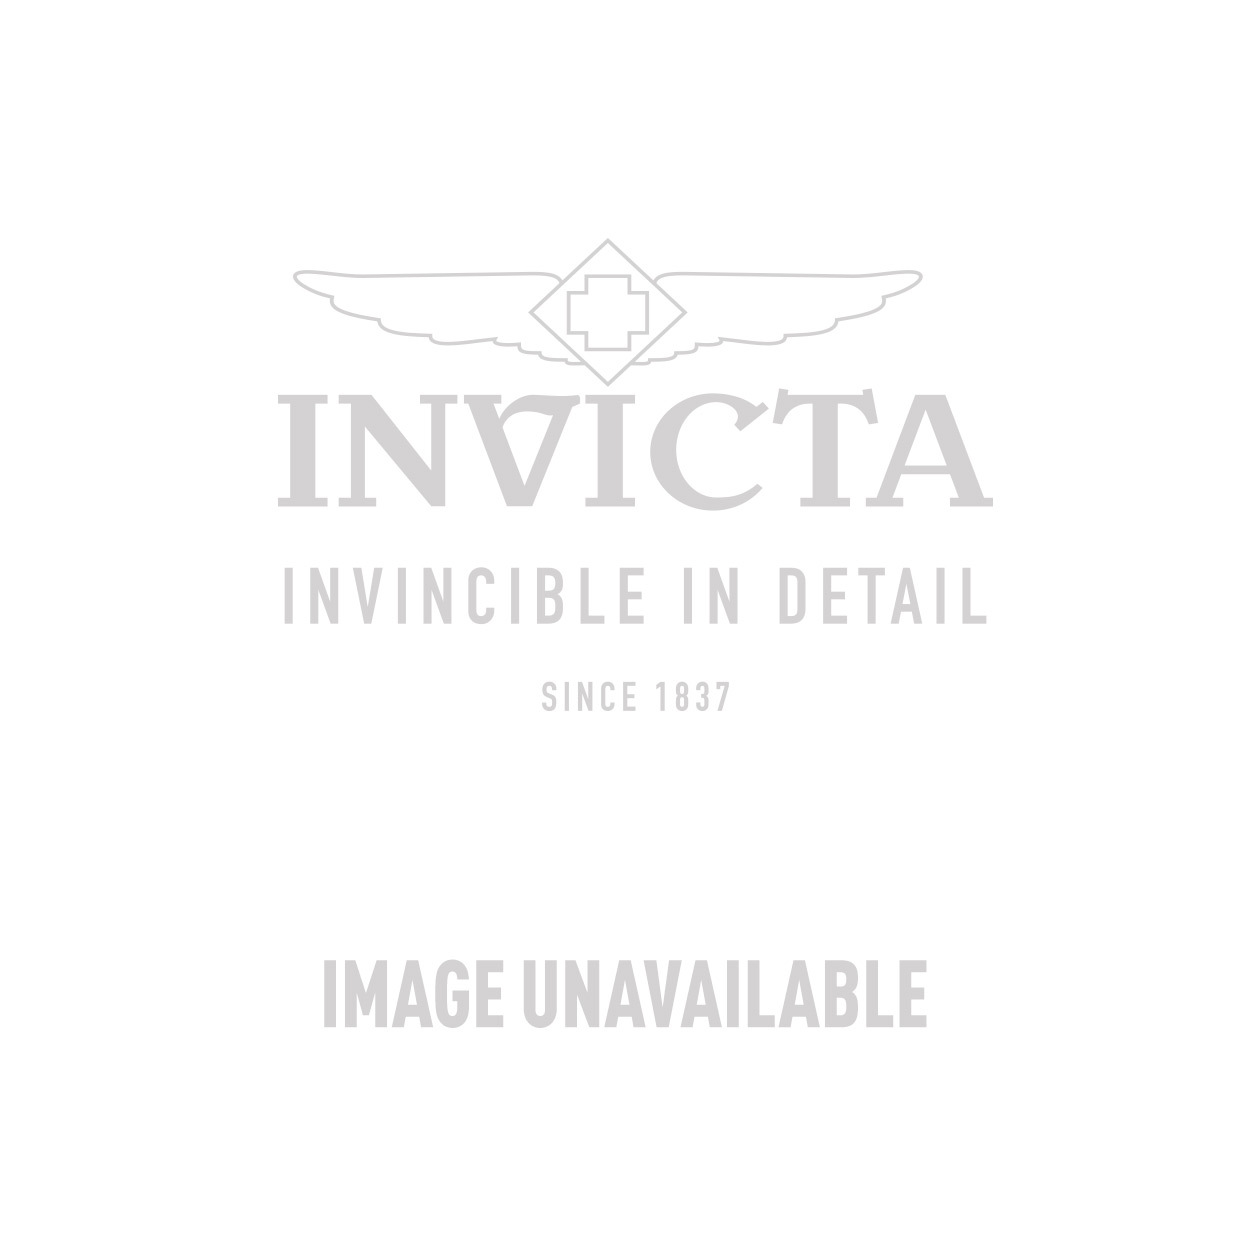 Invicta Russian Diver Quartz Watch - Stainless Steel case with Black tone Leather band - Model 14079